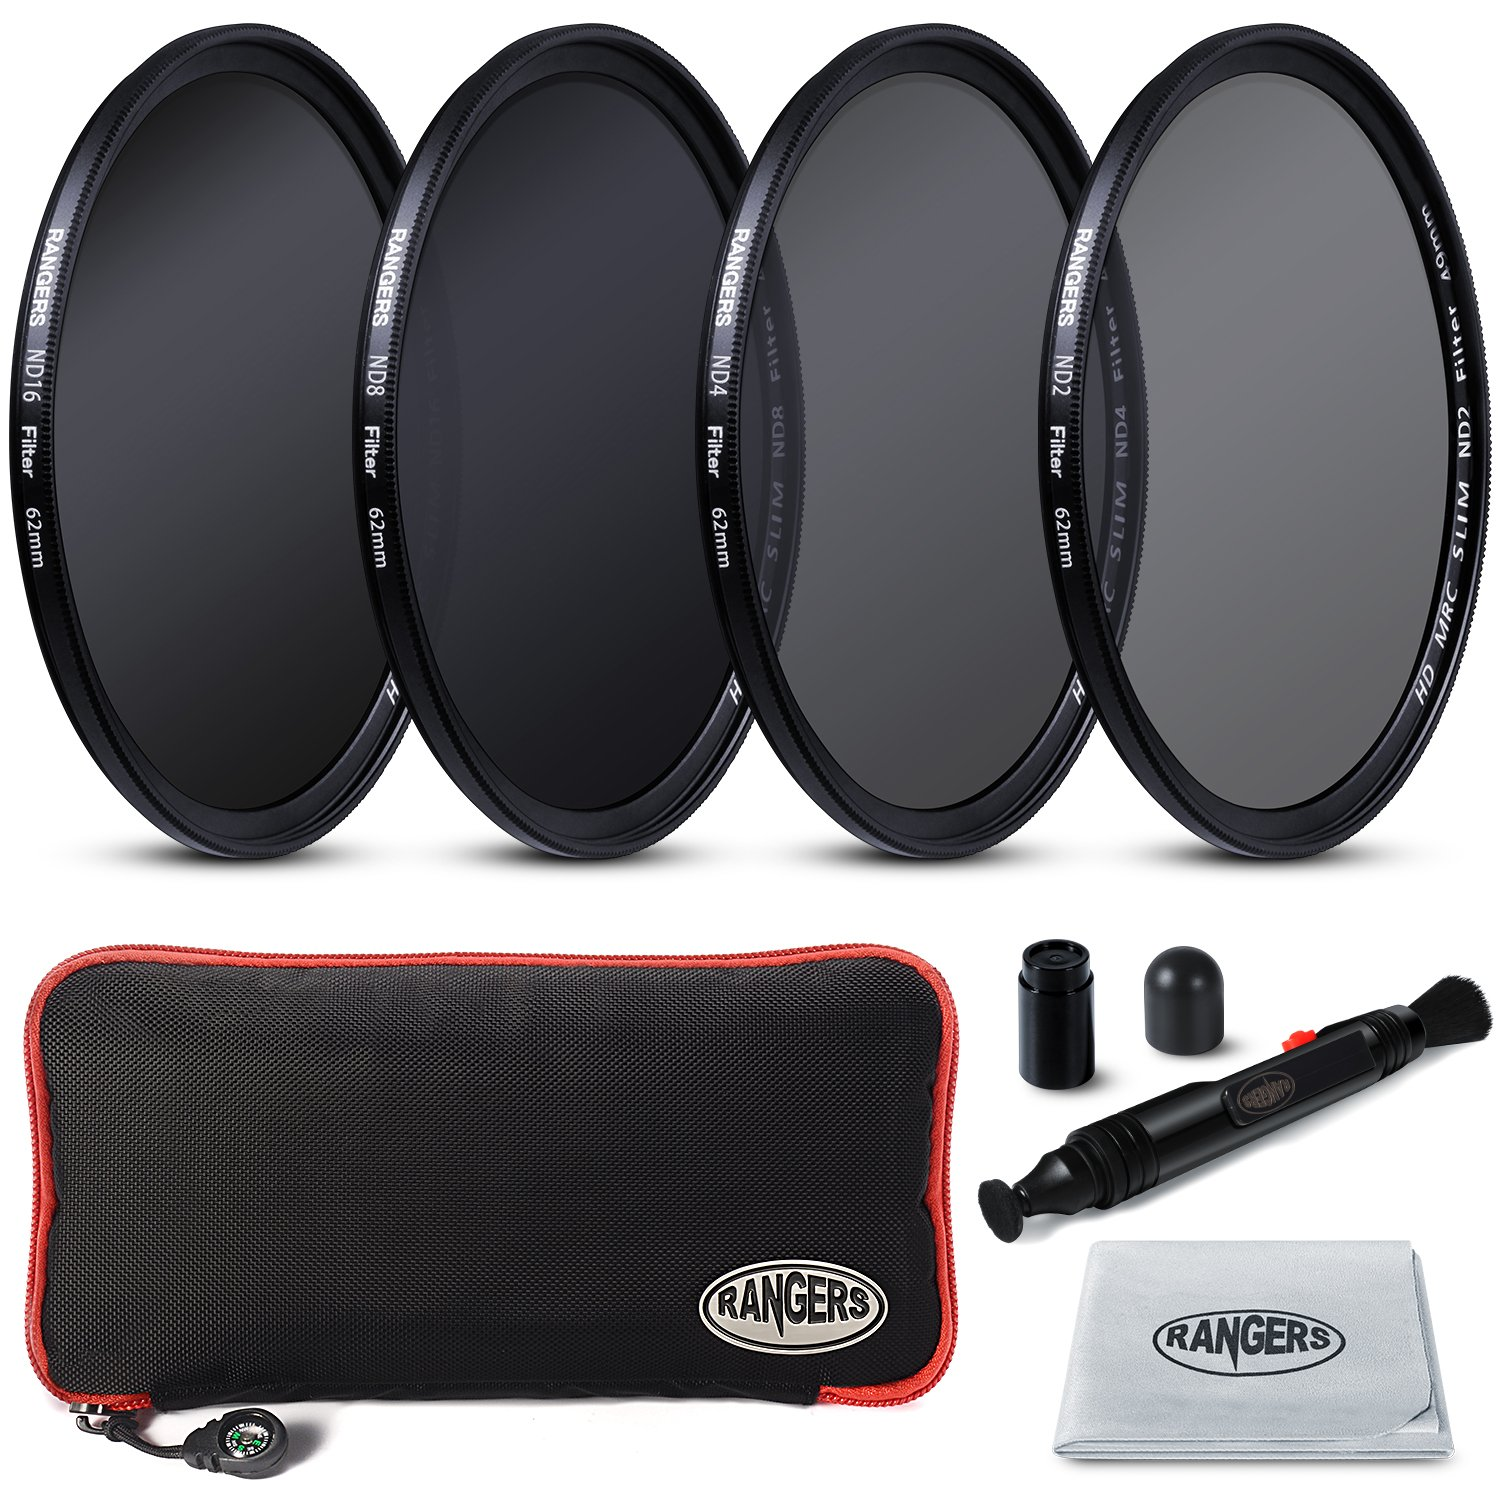 Rangers 62mm Full ND2, ND4, ND8, ND16 Neutral Density Filters and Carrying Case + Lens Cleaning Cloth + Lens Cleaning Pen RA-RA019